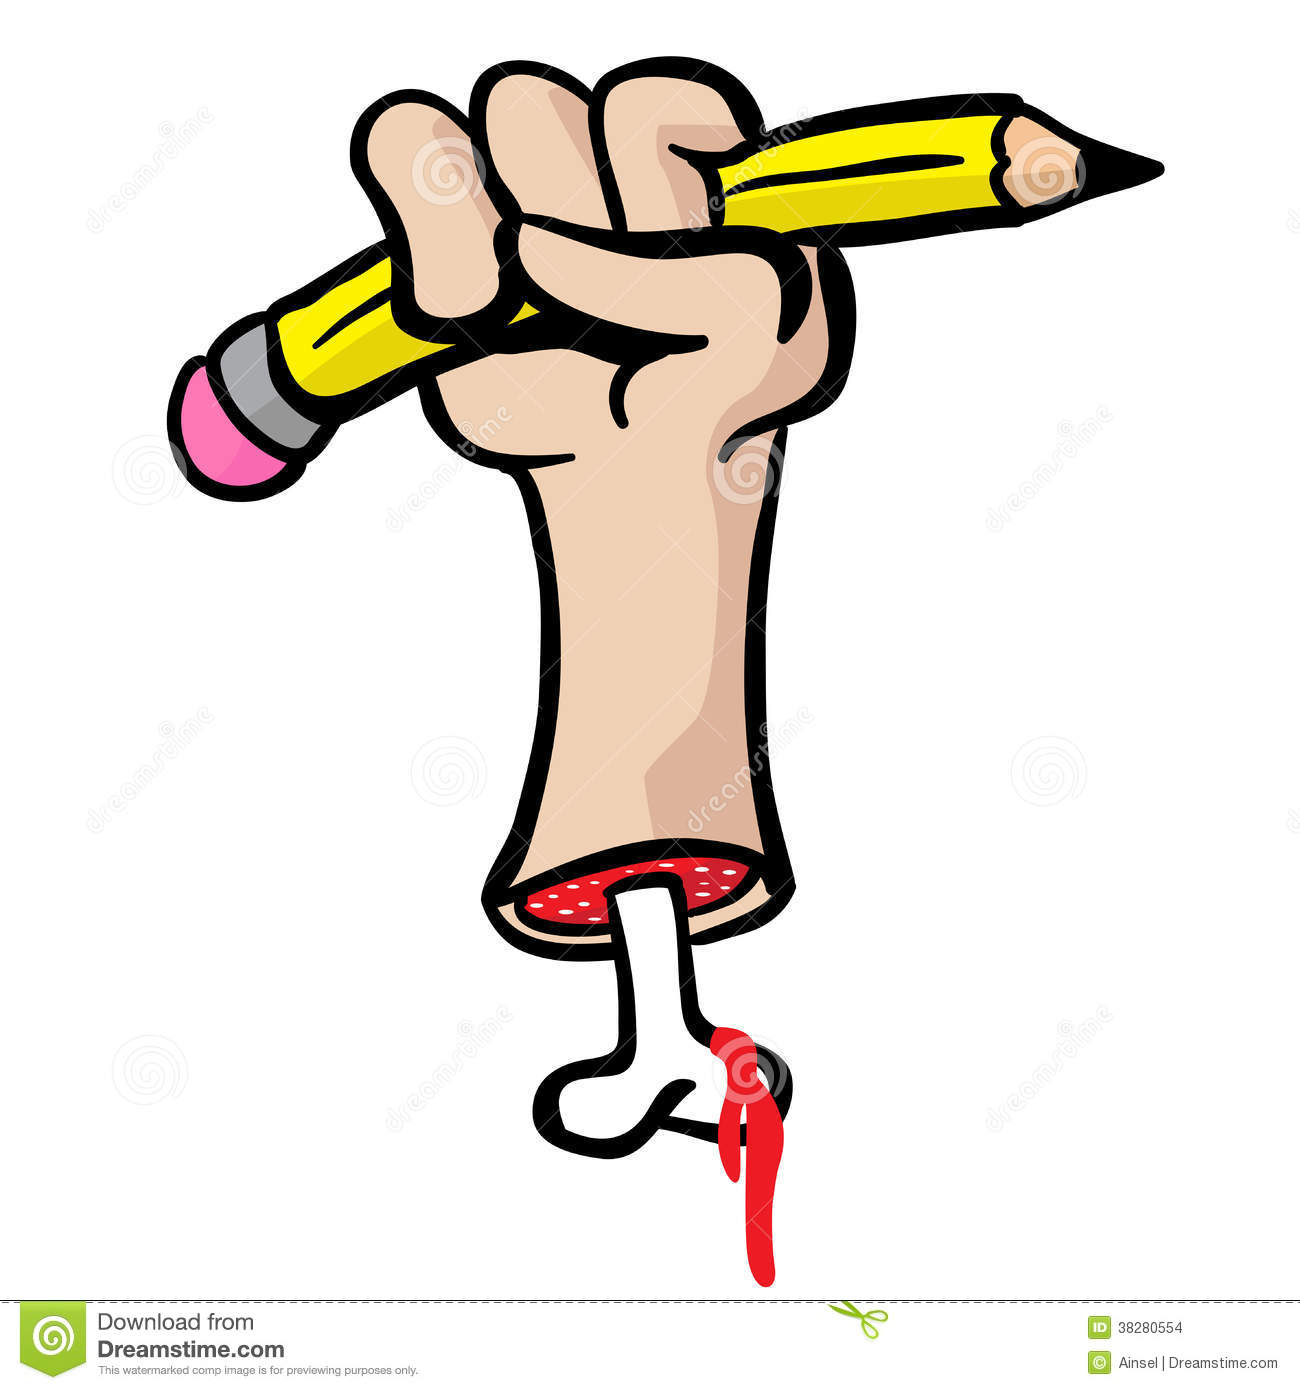 Pencil In Hand Clipart.